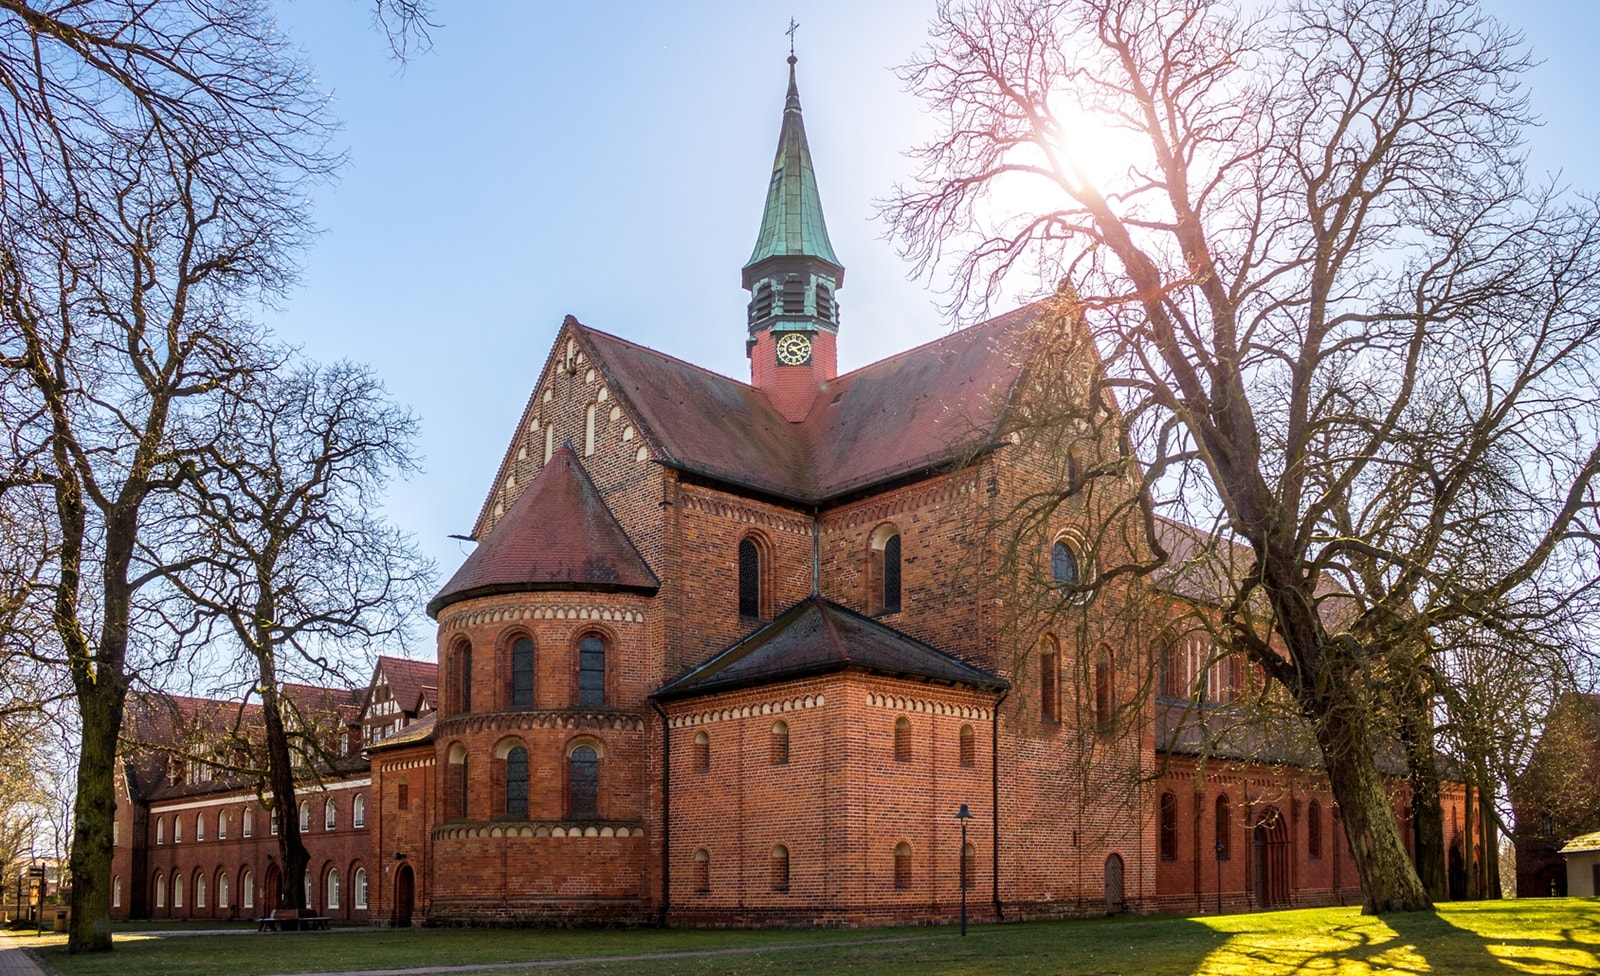 Ehemaliges Kloster in Brandenburg